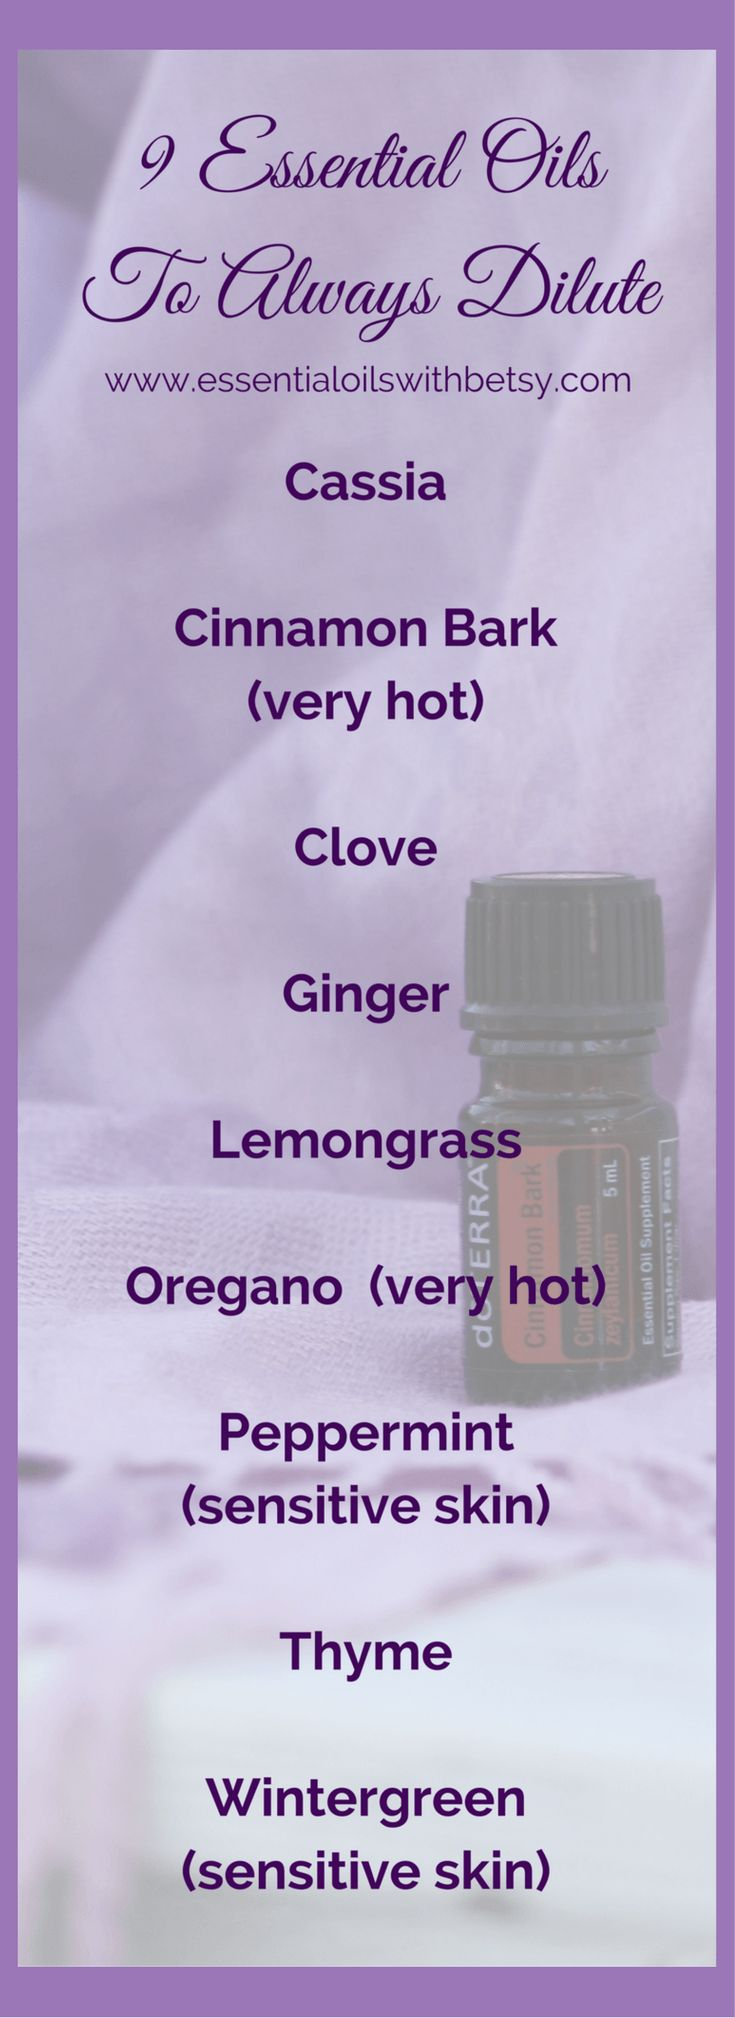 List Of doTERRA Essential Oils Which Require Dilution essential oils to always dilute Here is a list of all the doTERRA essential oils that require dilution before topical use. You may click on each oil to learn more about the benefits. Again, this list isn't to frighten you away, but to help you safely enjoy the benefits of essential oils! Cassia Cinnamon Bark (very hot) Clove Ginger Lemongrass Oregano (very hot) Peppermint (sensitive skin) Thyme Wintergreen (sensitive skin) Depending on…